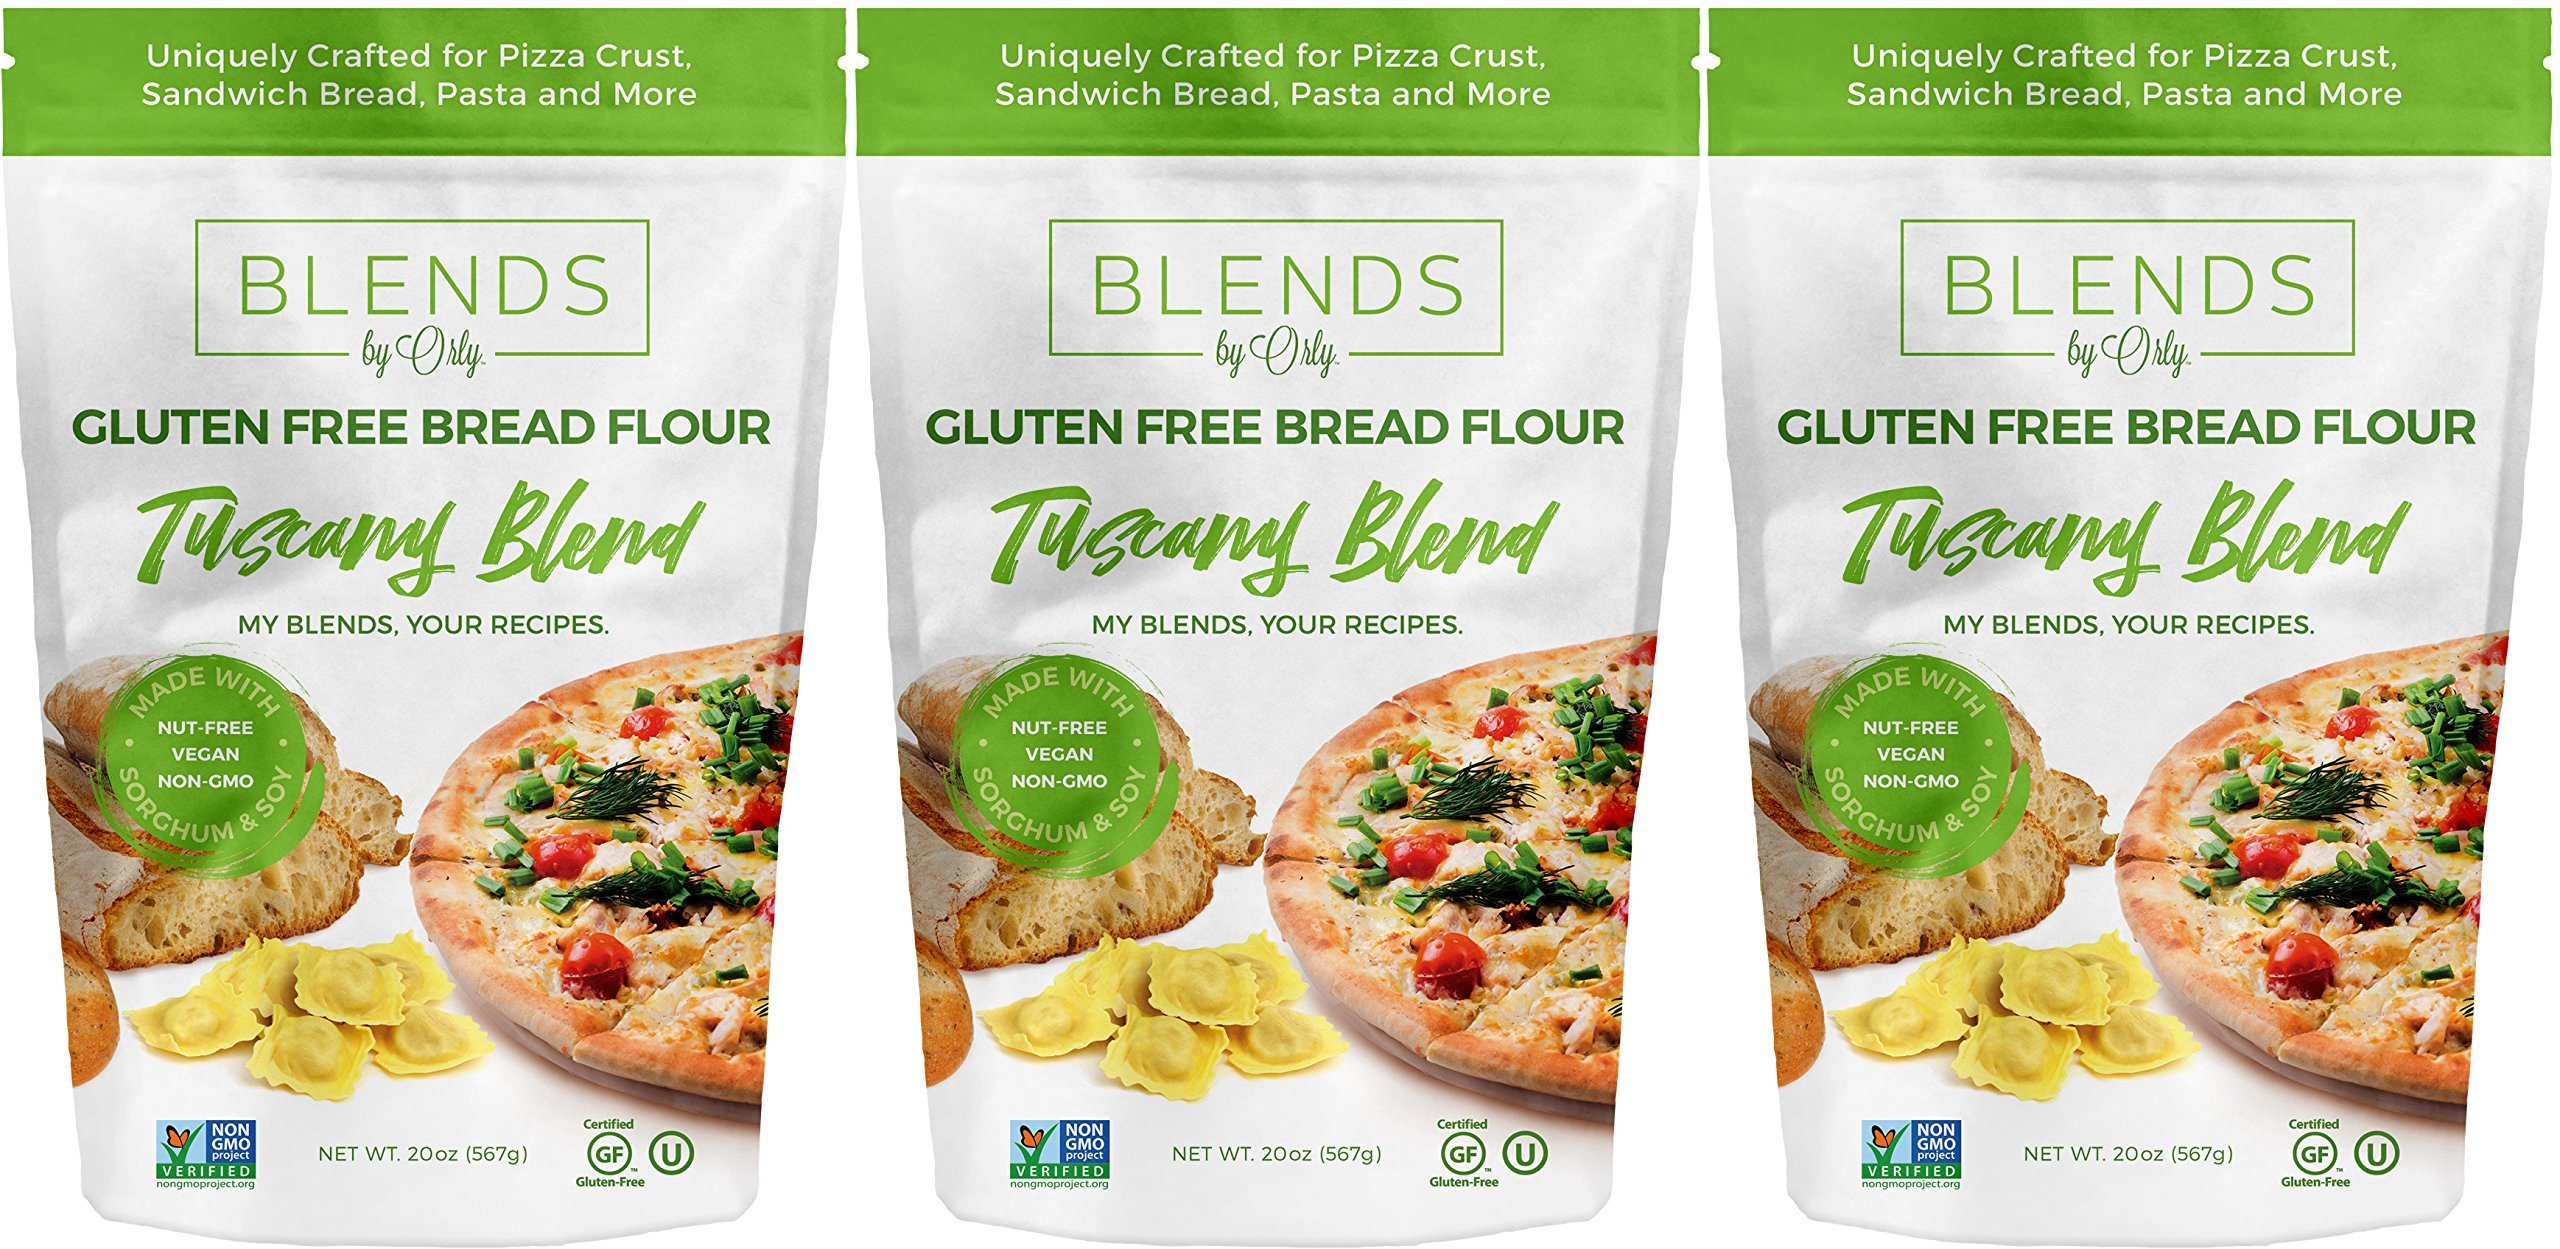 Premium Gluten Free Bread Flour - Baking Flour for Gluten Free Bread, Gluten Free Pizza Crust, Gluten Free Burger Buns, Gluten Free Pasta & GF Focaccia from Tuscany Blends by Orly 60 OZ (Pack of 3) by Blends By Orly